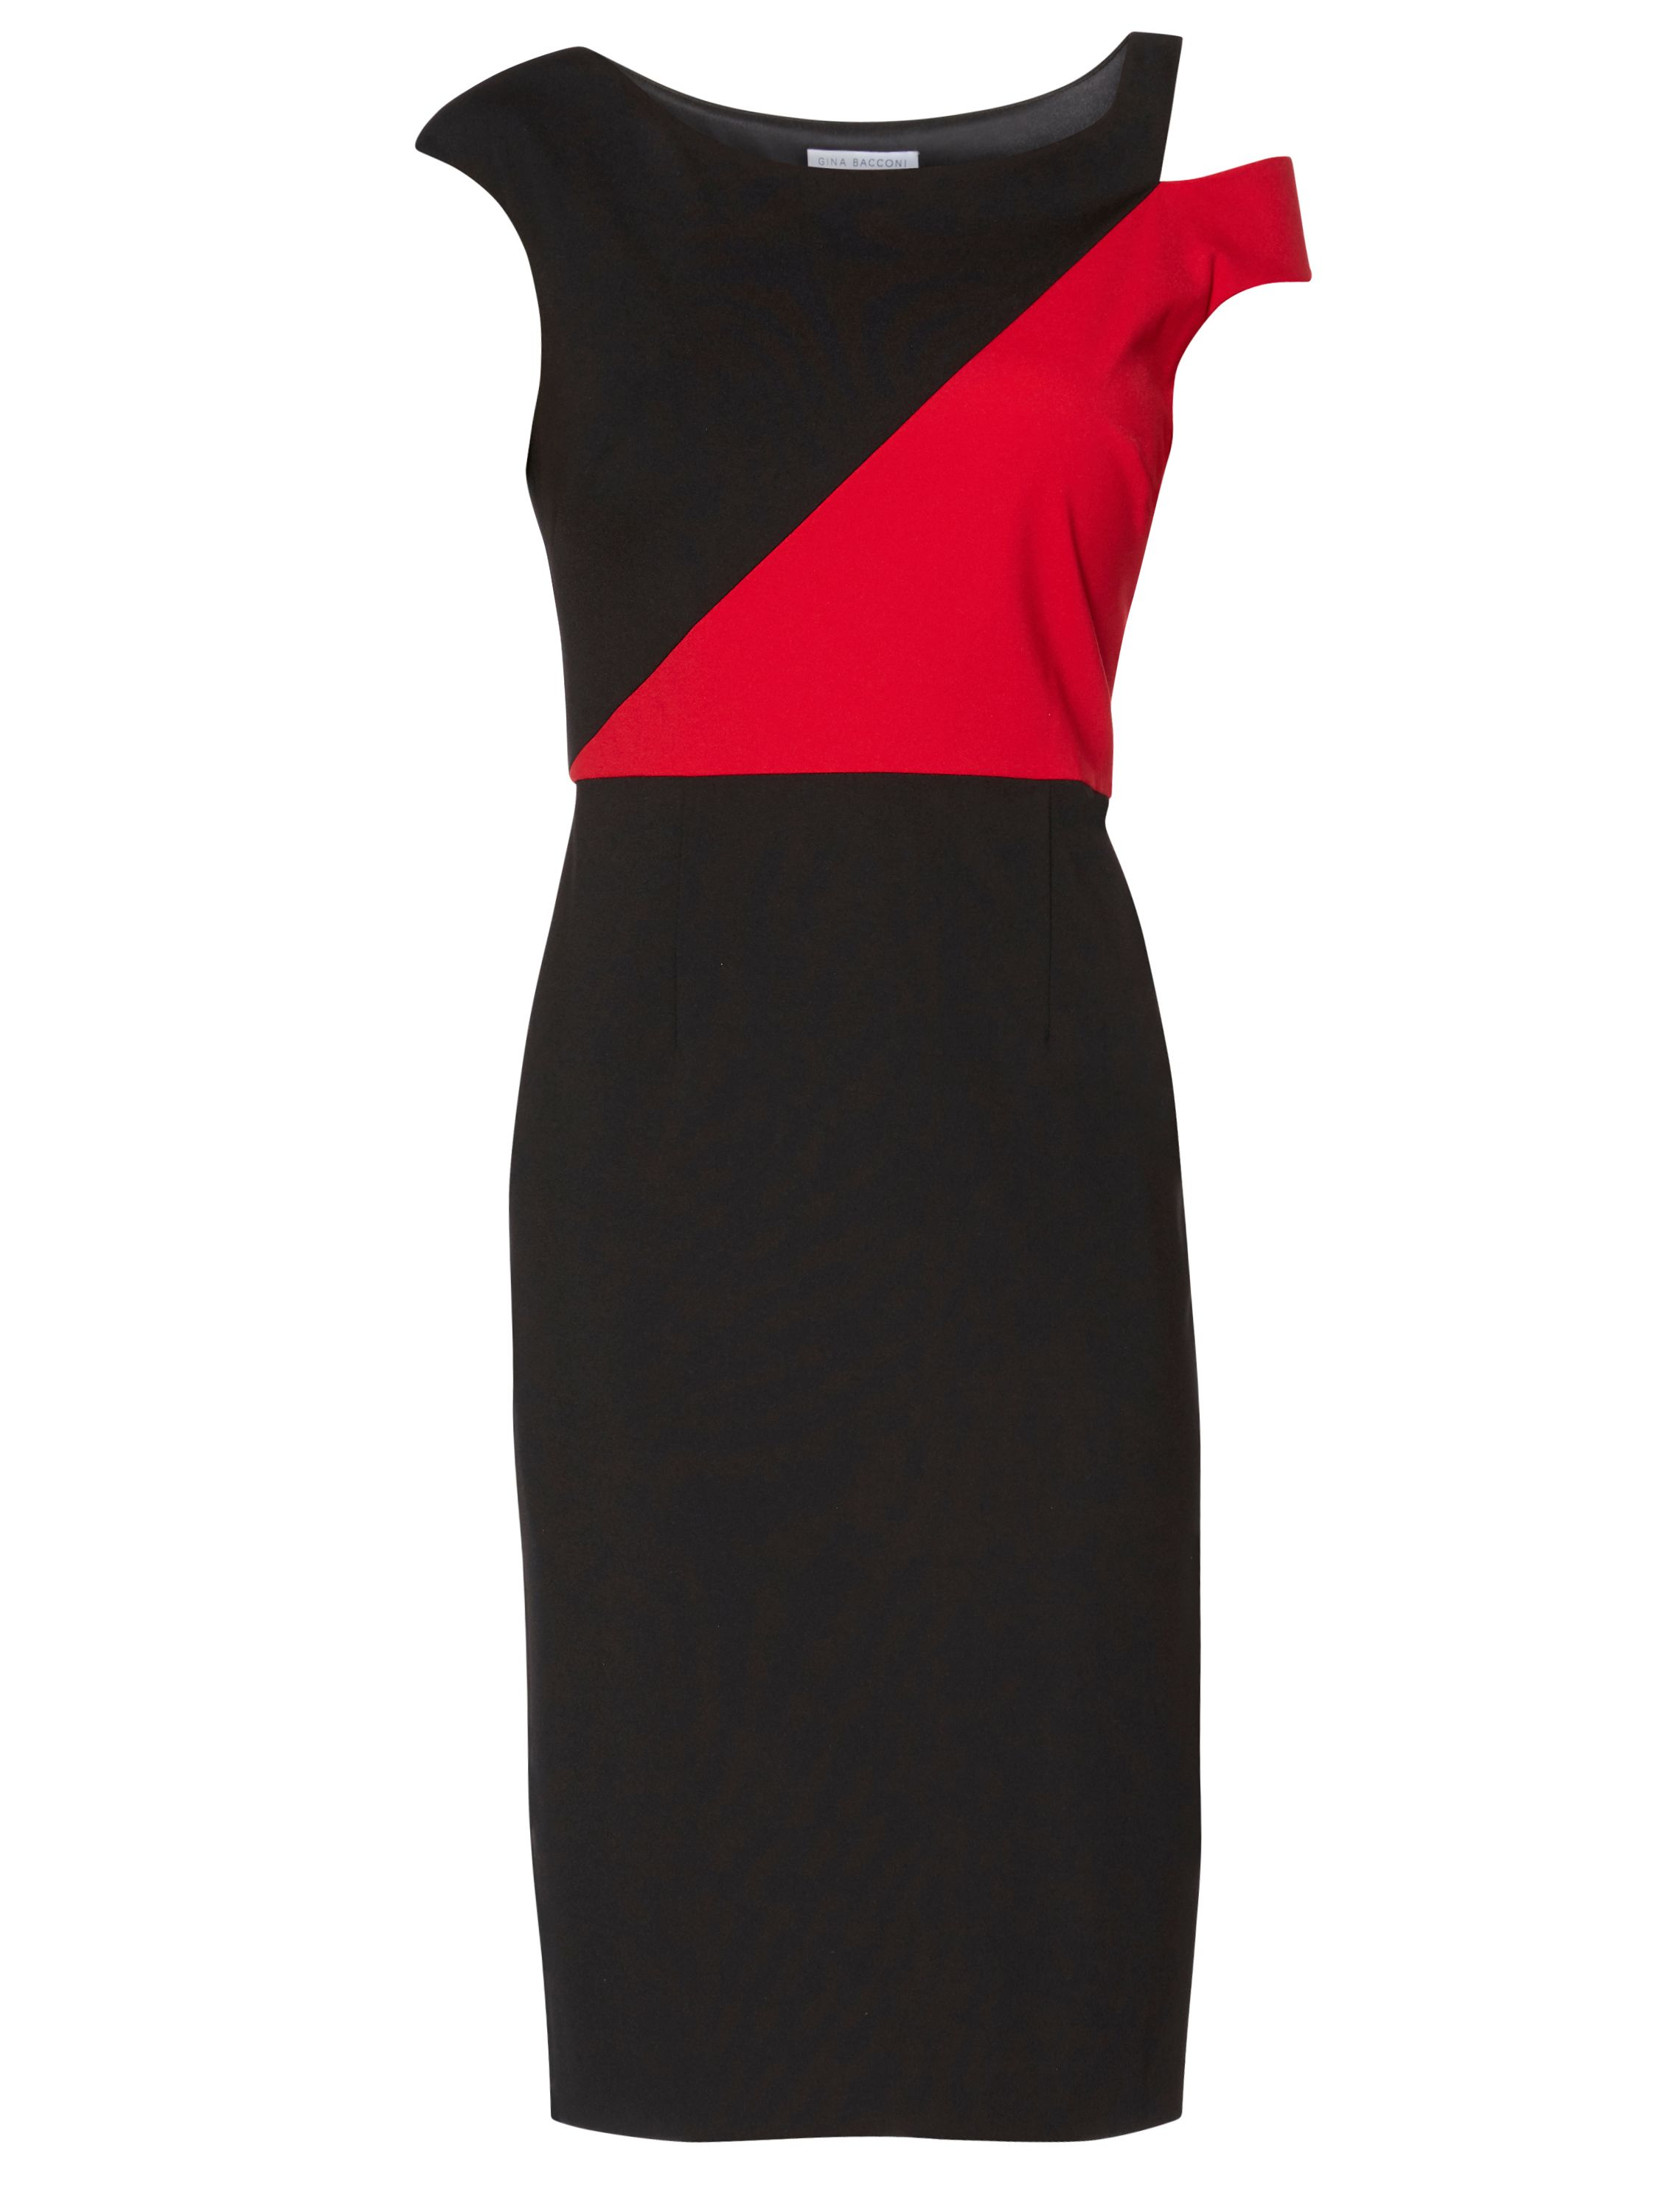 Gina Bacconi Zoe Contrast Panel Dress, Multi-Coloured